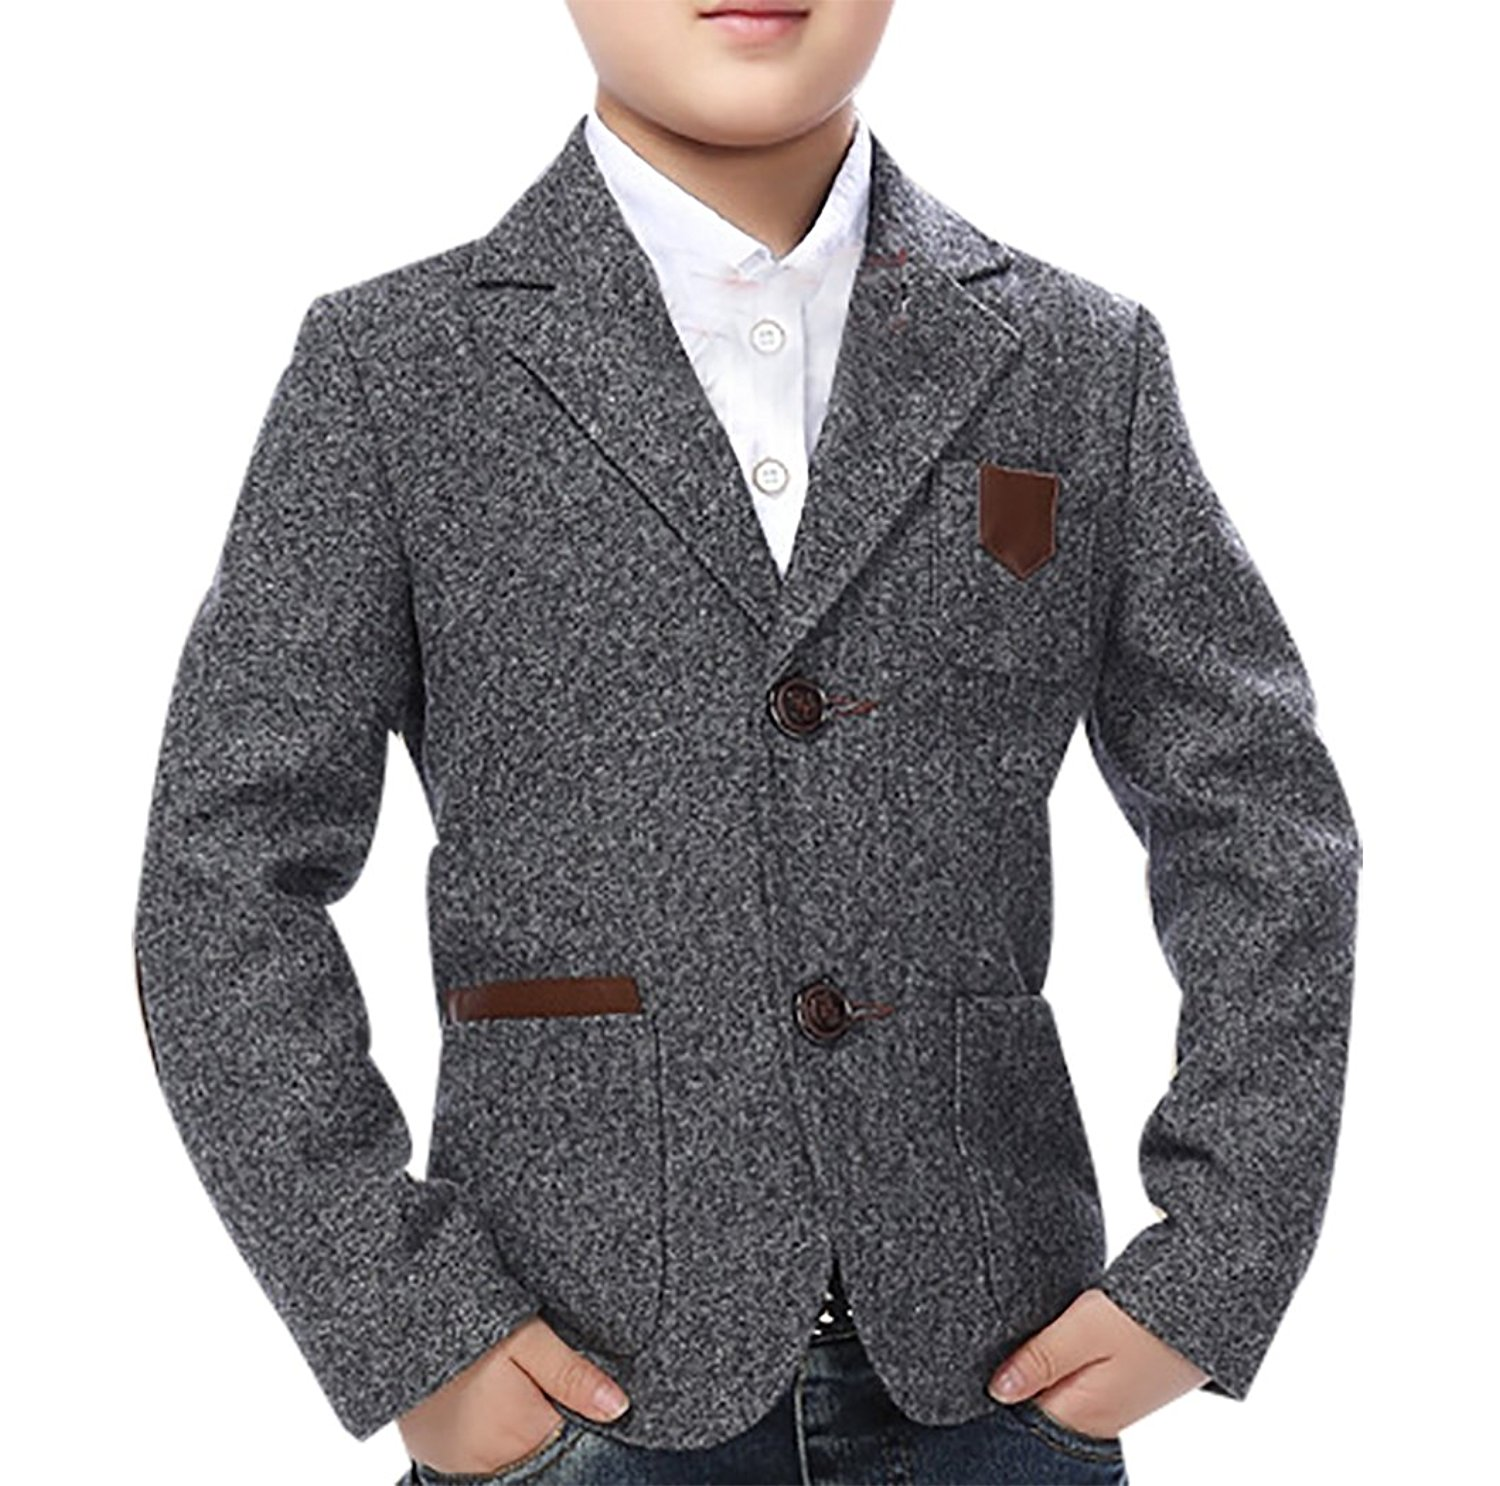 Blazer Coats and Jackets for Boys at Macy's come in all styles. Buy popular coats & jackets for boys at Macy's! Free shipping: Macy's Star Rewards Members!